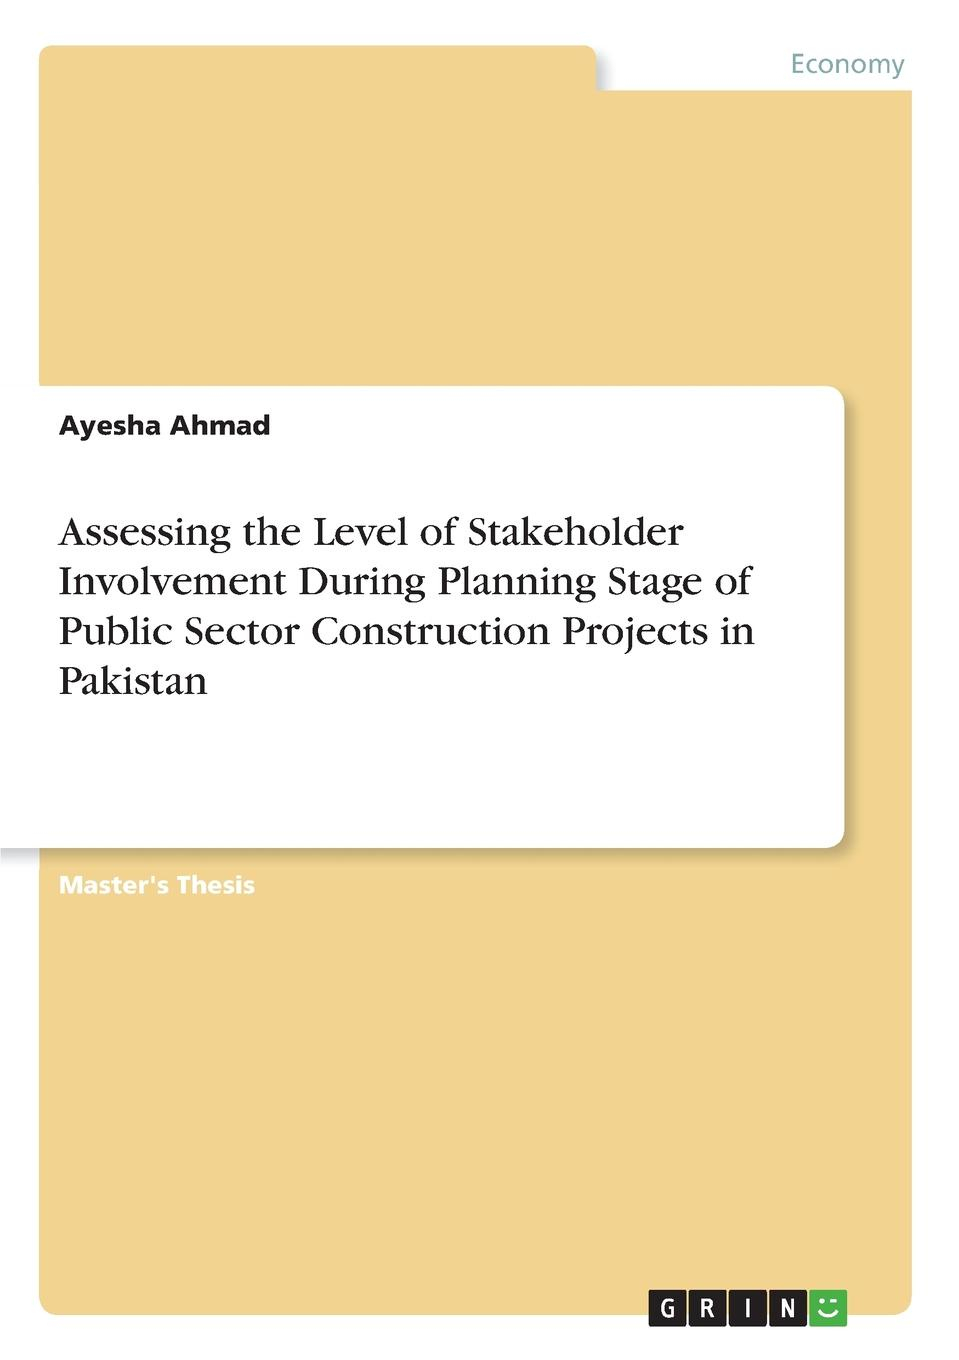 Ayesha Ahmad Assessing the Level of Stakeholder Involvement During Planning Stage of Public Sector Construction Projects in Pakistan senaratne sepani managing change in construction projects a knowledge based approach